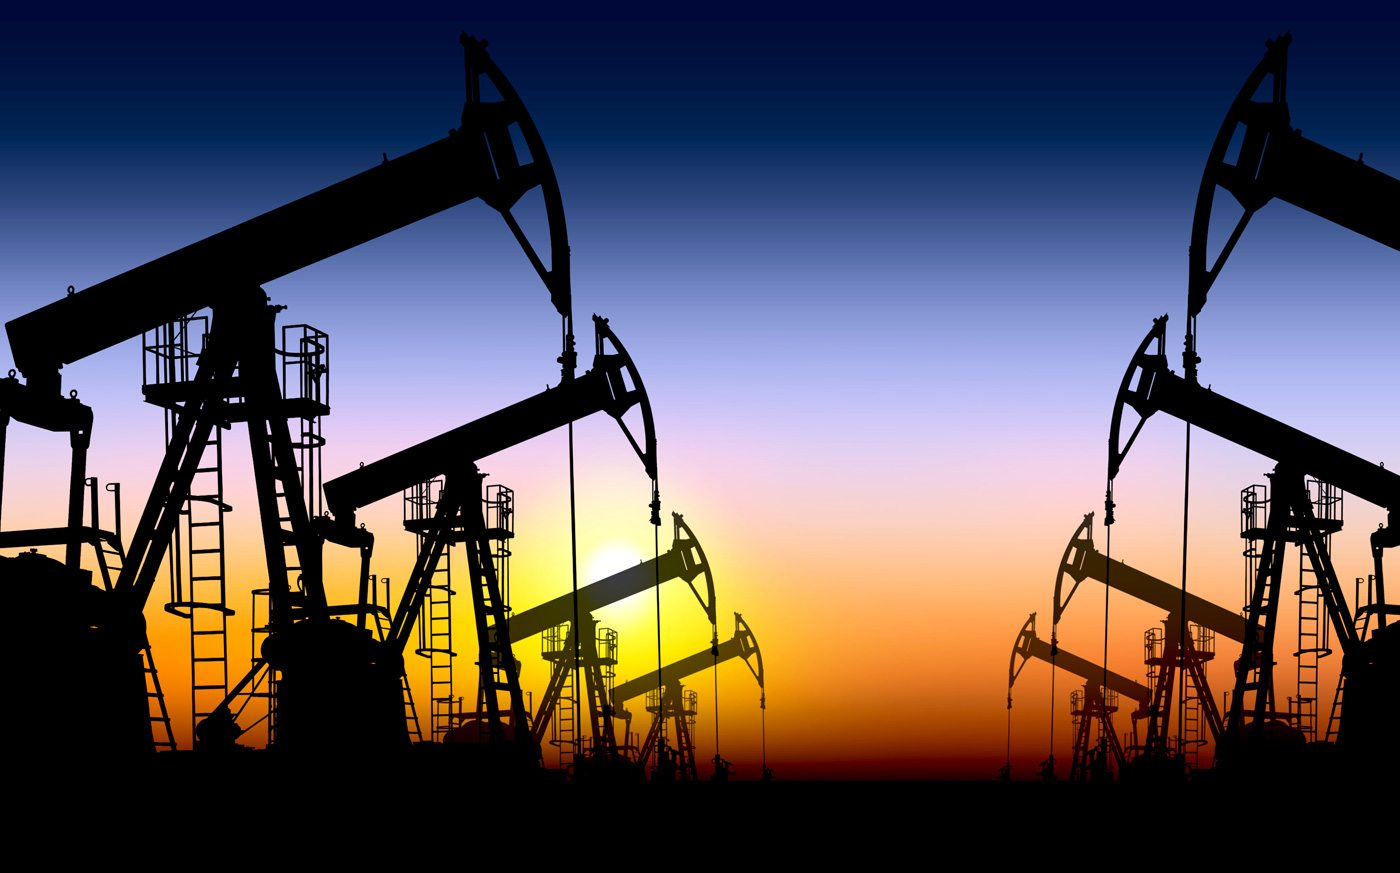 Upstream oil and gas industry uses sensors and servers to